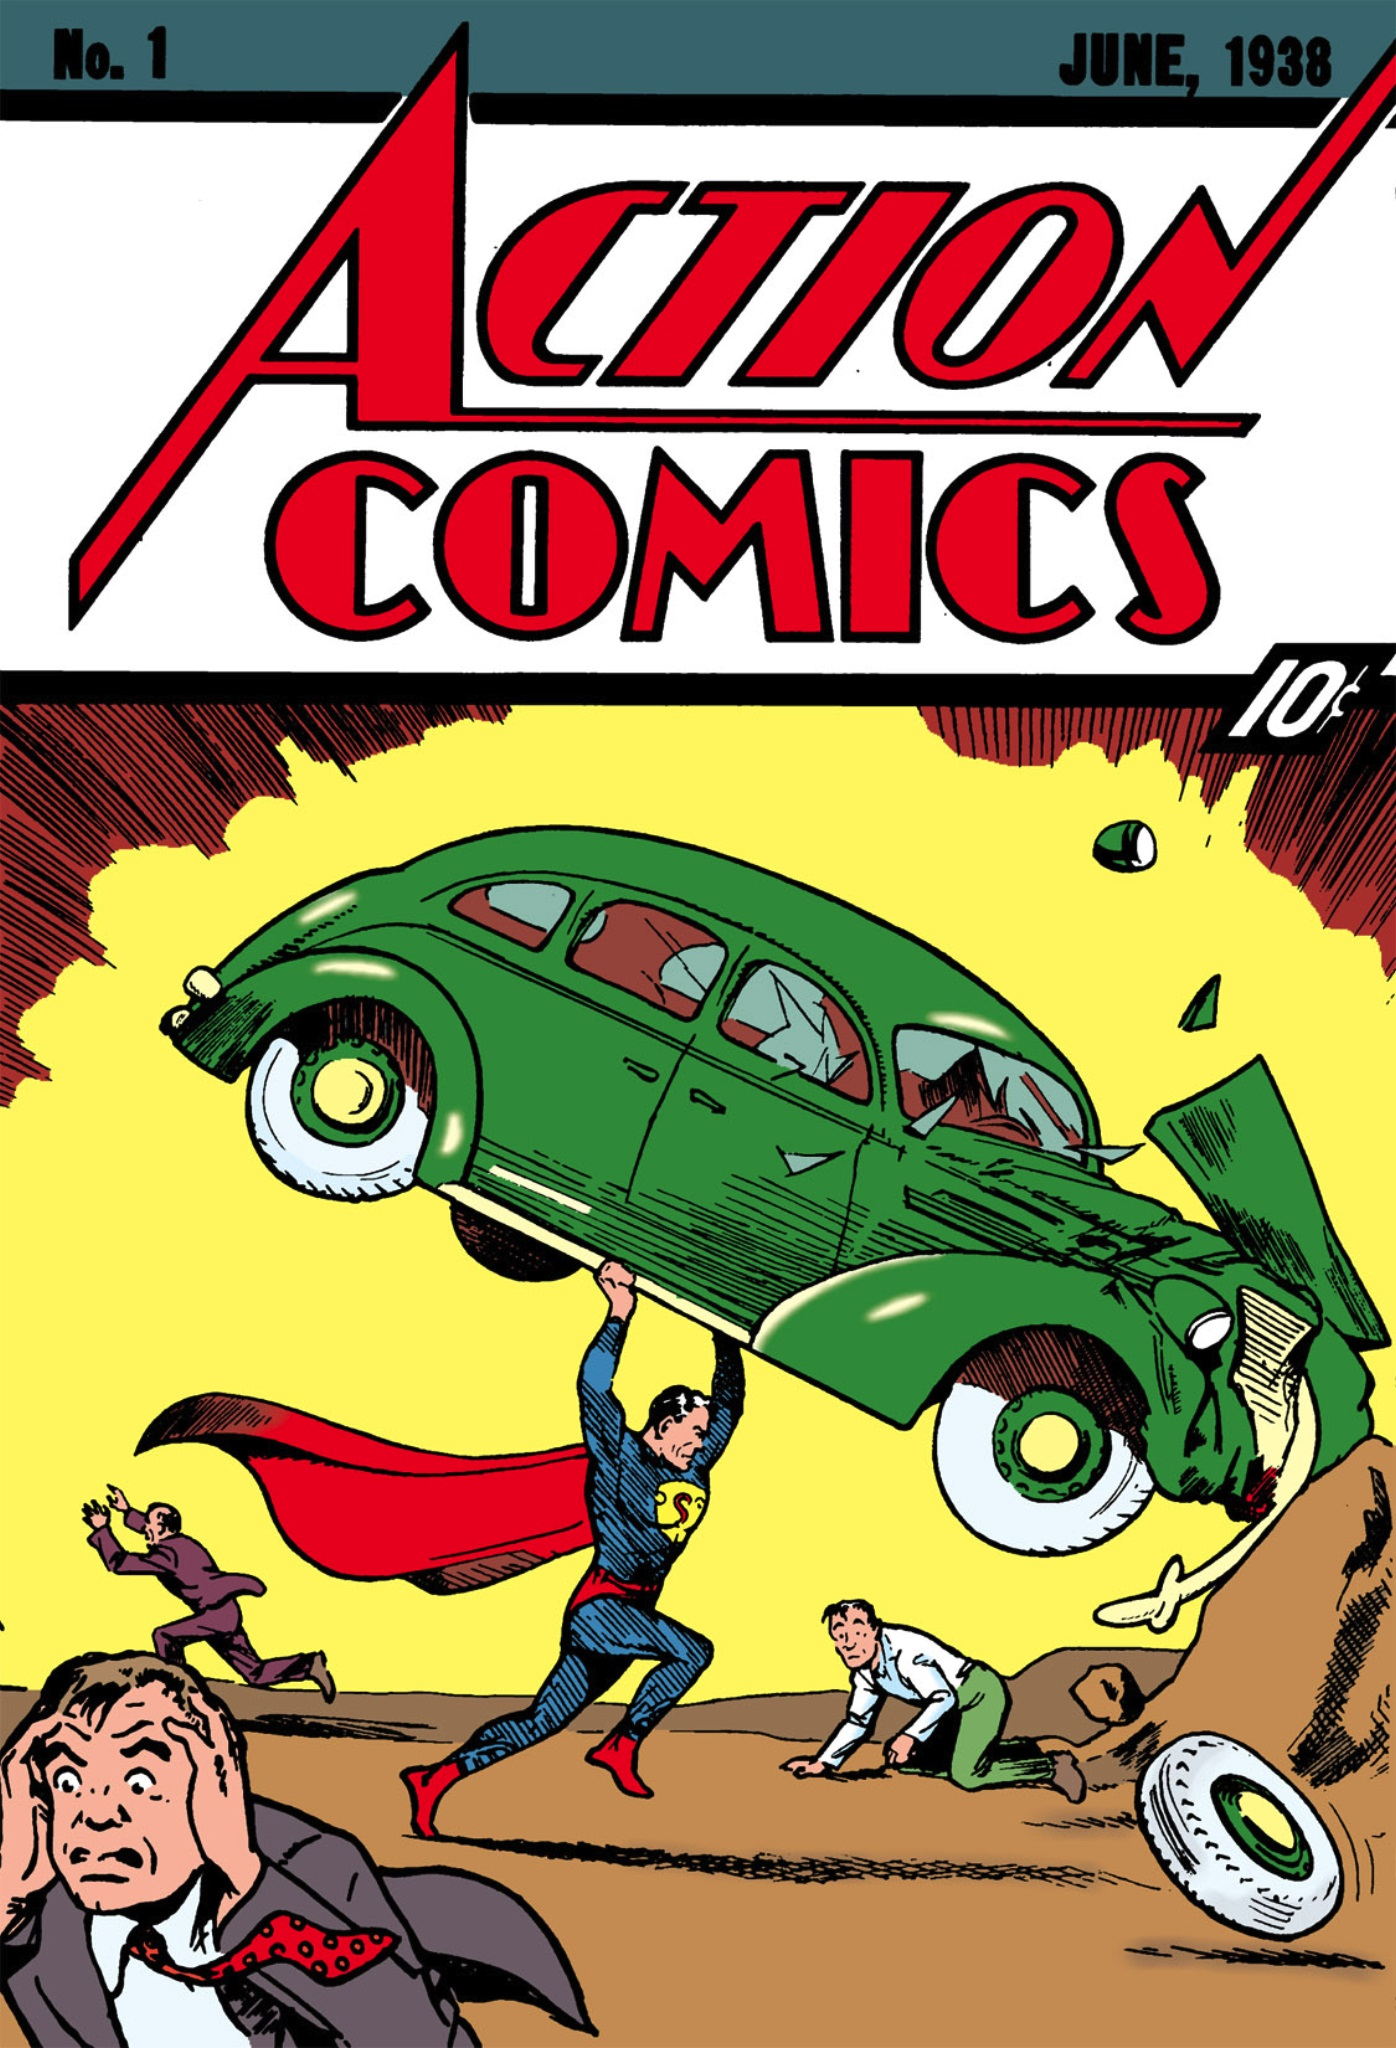 Action Comics 1 - Superman, Champion of the Oppressed!